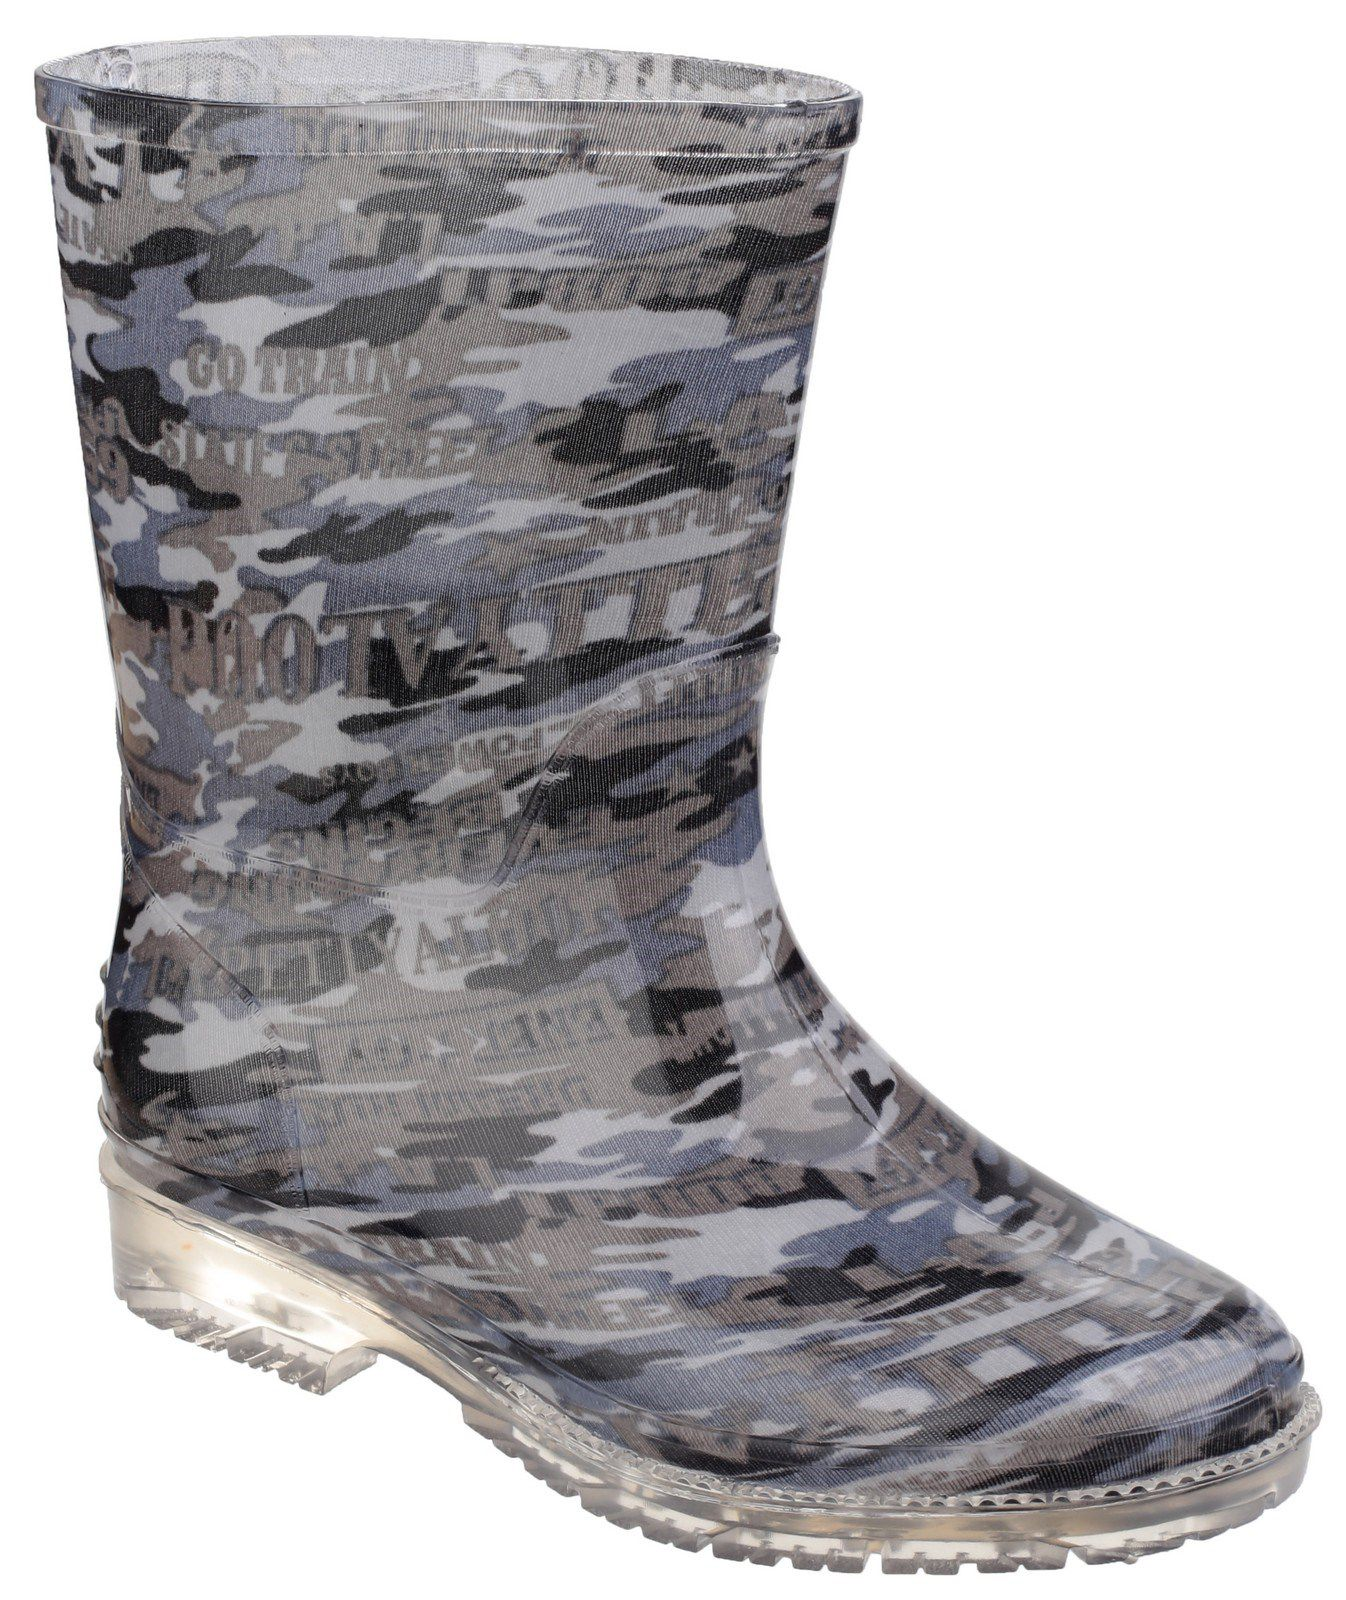 Cotswold Cotswold Kids Patterned PVC Wellies, Grey